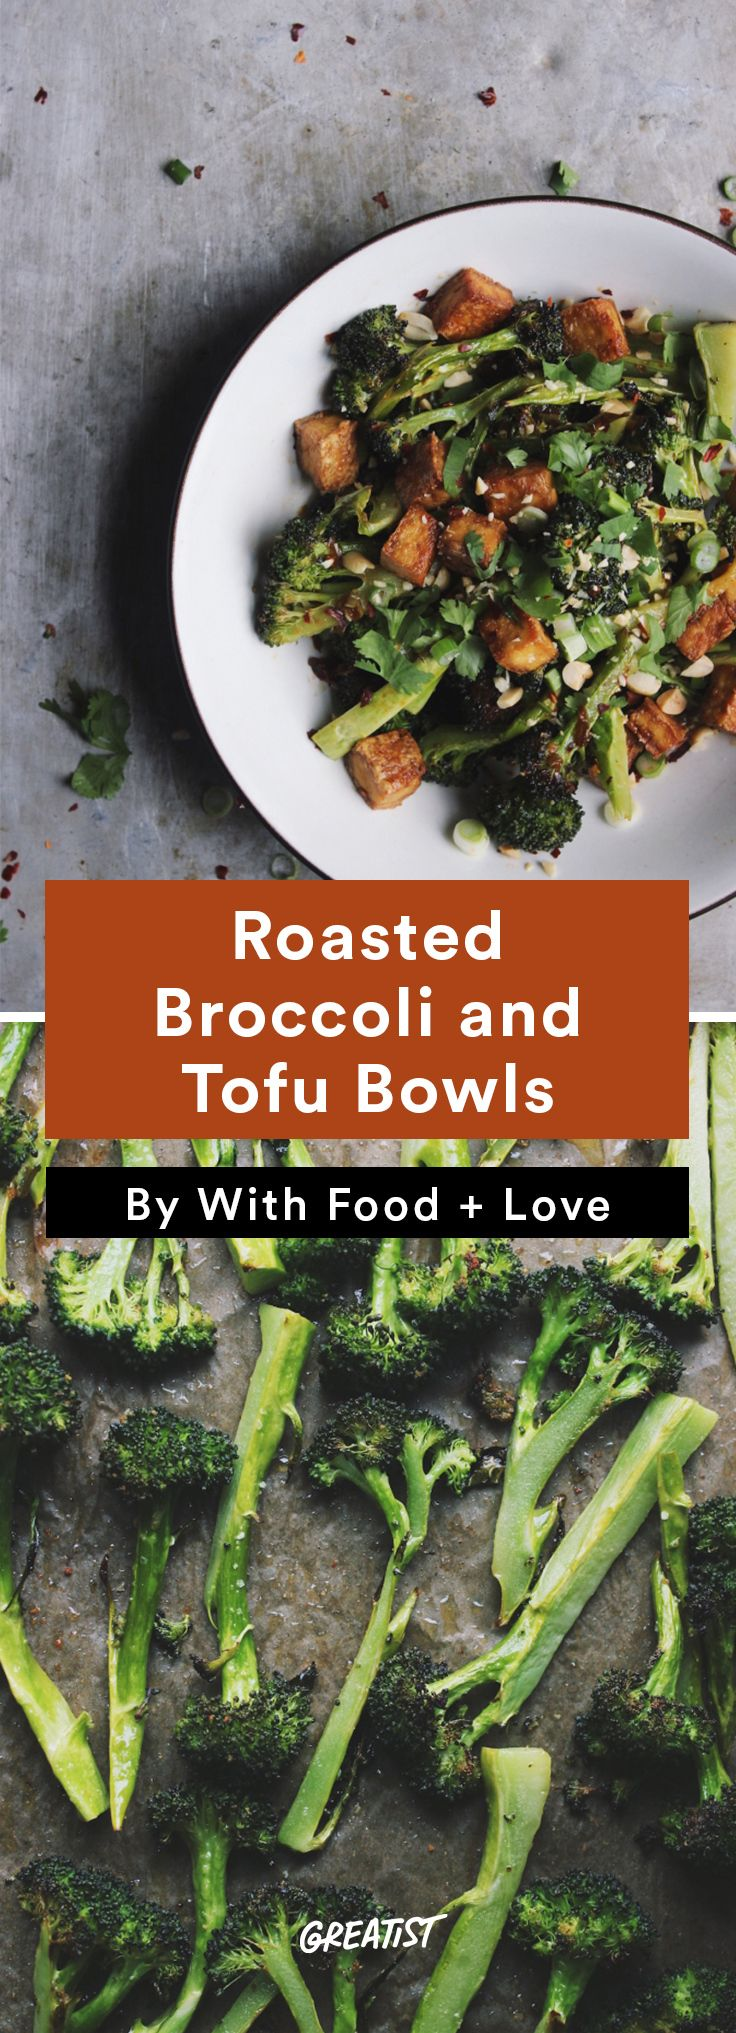 5. Roasted Broccoli and Tofu Bowls #easy #vegetarian #dinners http://greatist.com/eat/vegetarian-dinner-recipes-that-bake-in-one-pan